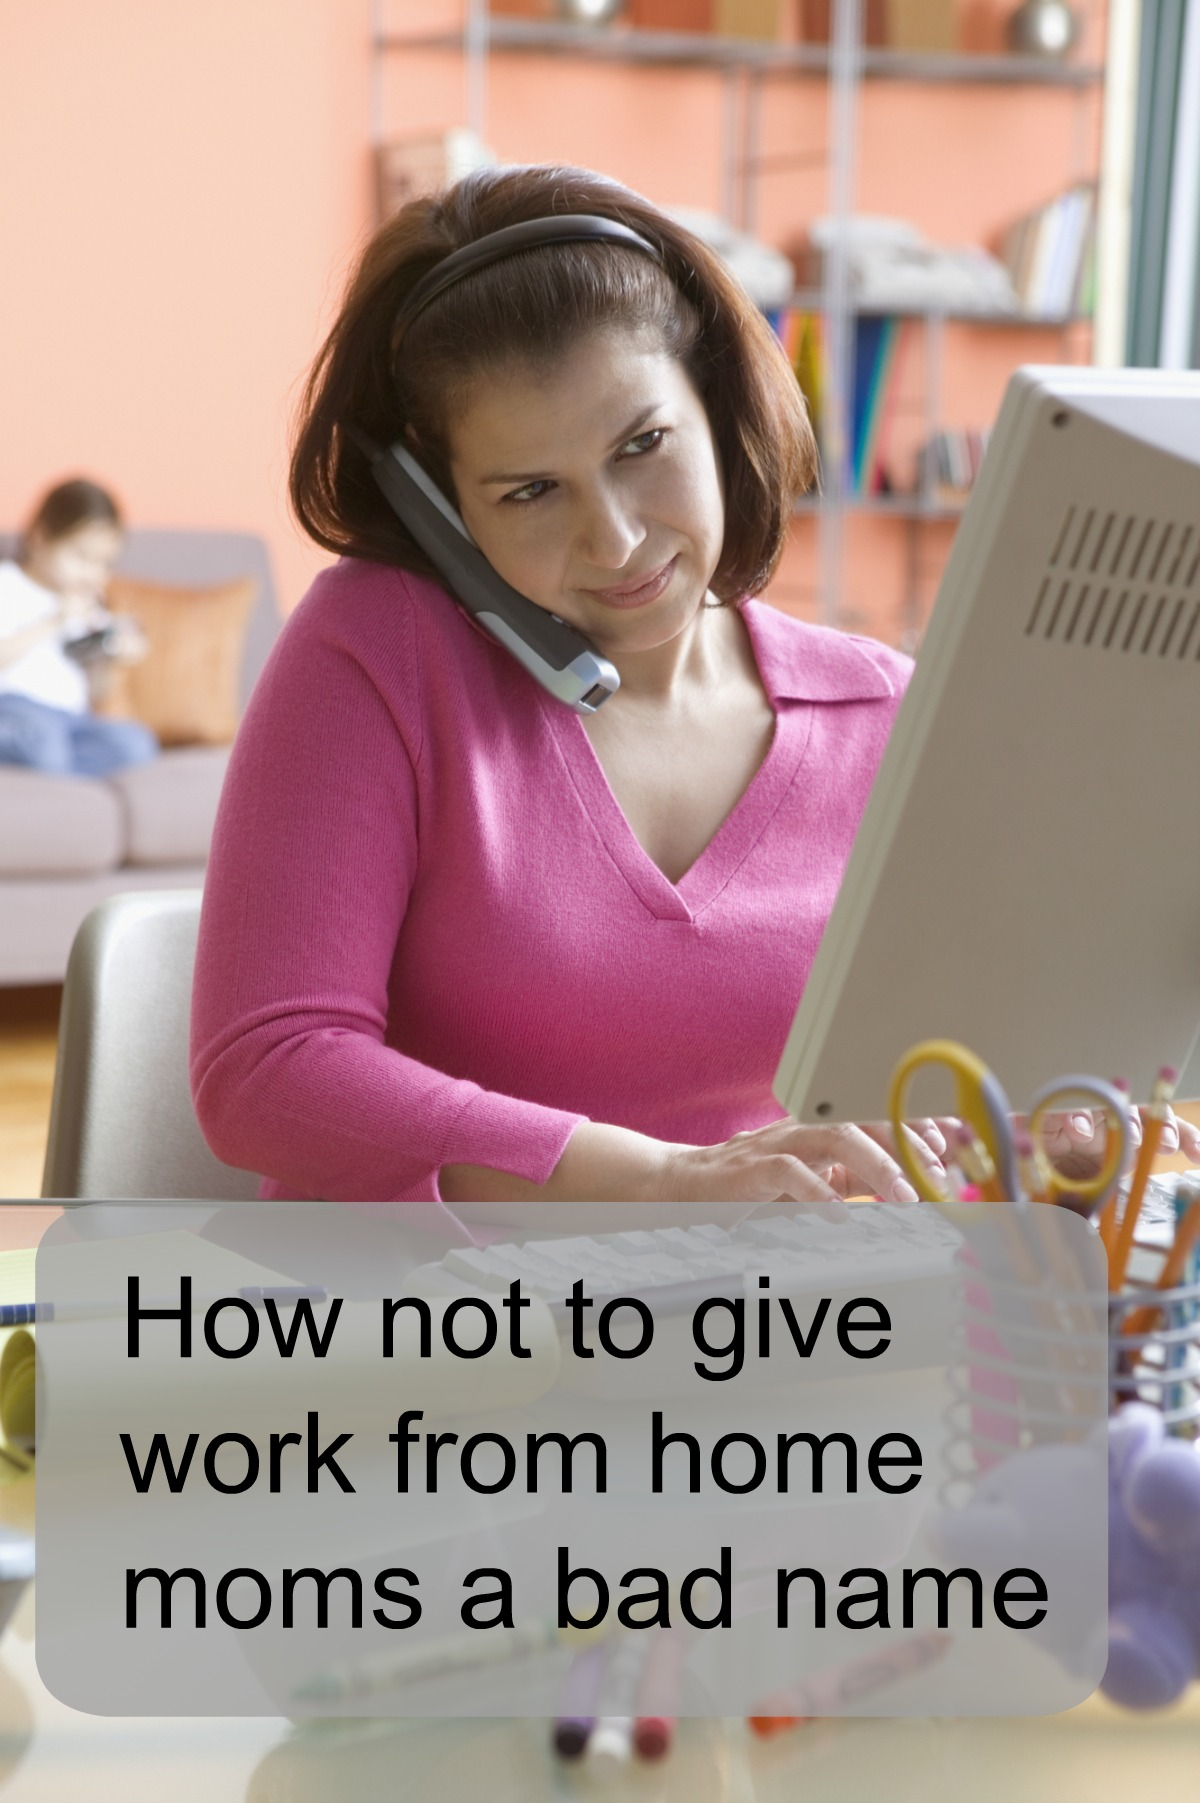 Work from home moms face special challenges. Here's how to handle the job like a pro.